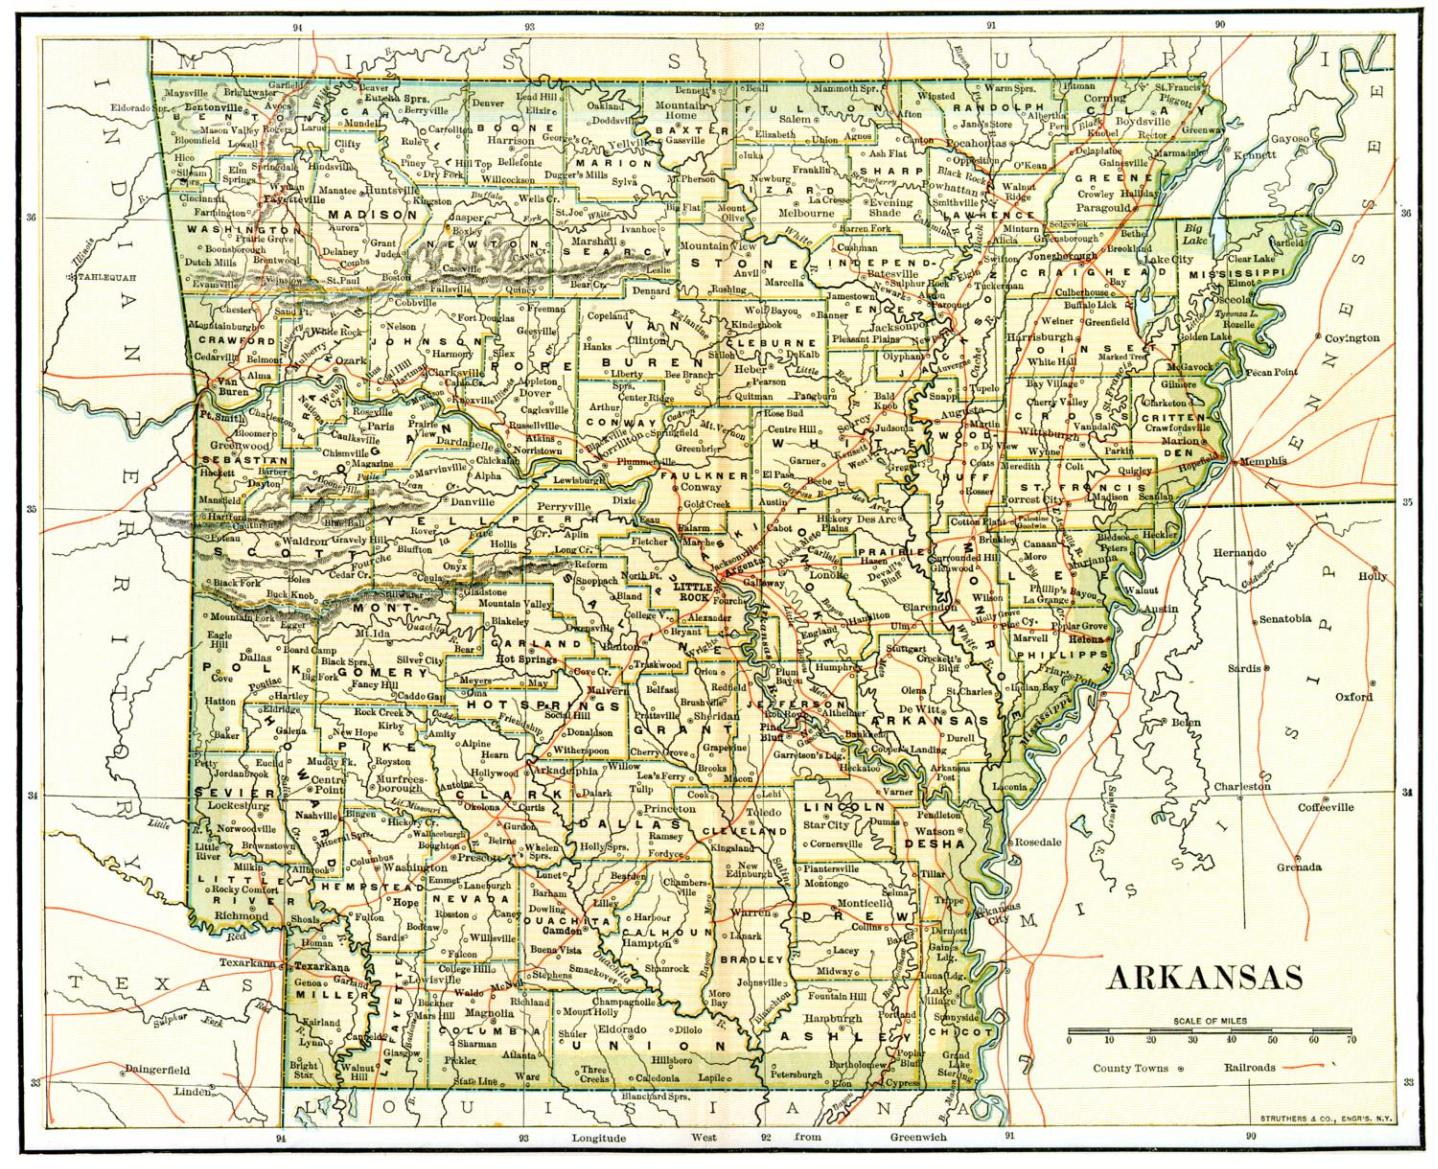 Arkansas Maps Arkansas Digital Map Library Table Of Contents - Maps of arkansas